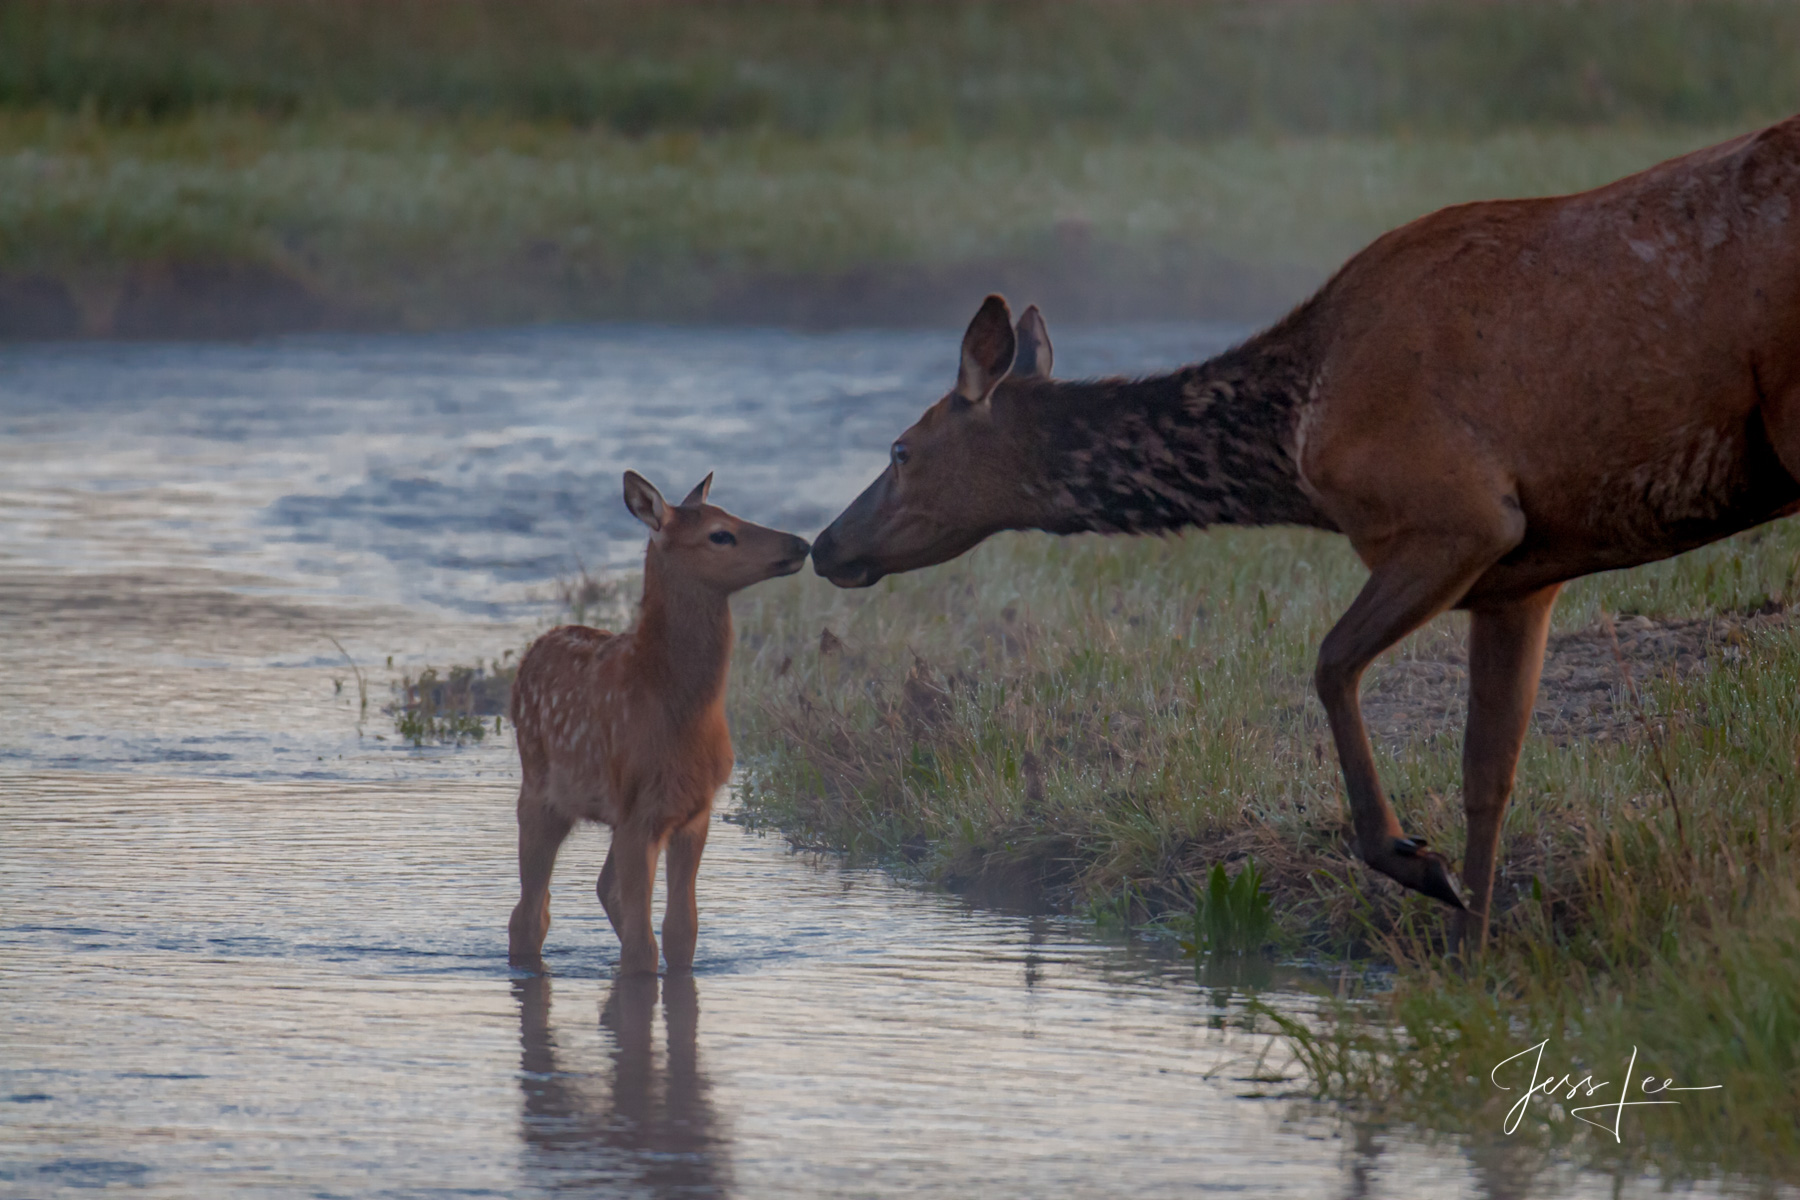 Elk Calf and Mom Limited Edition of 800 Exclusive high-resolution Museum Quality Fine Art Prints. Photos copyright © Jess Lee...